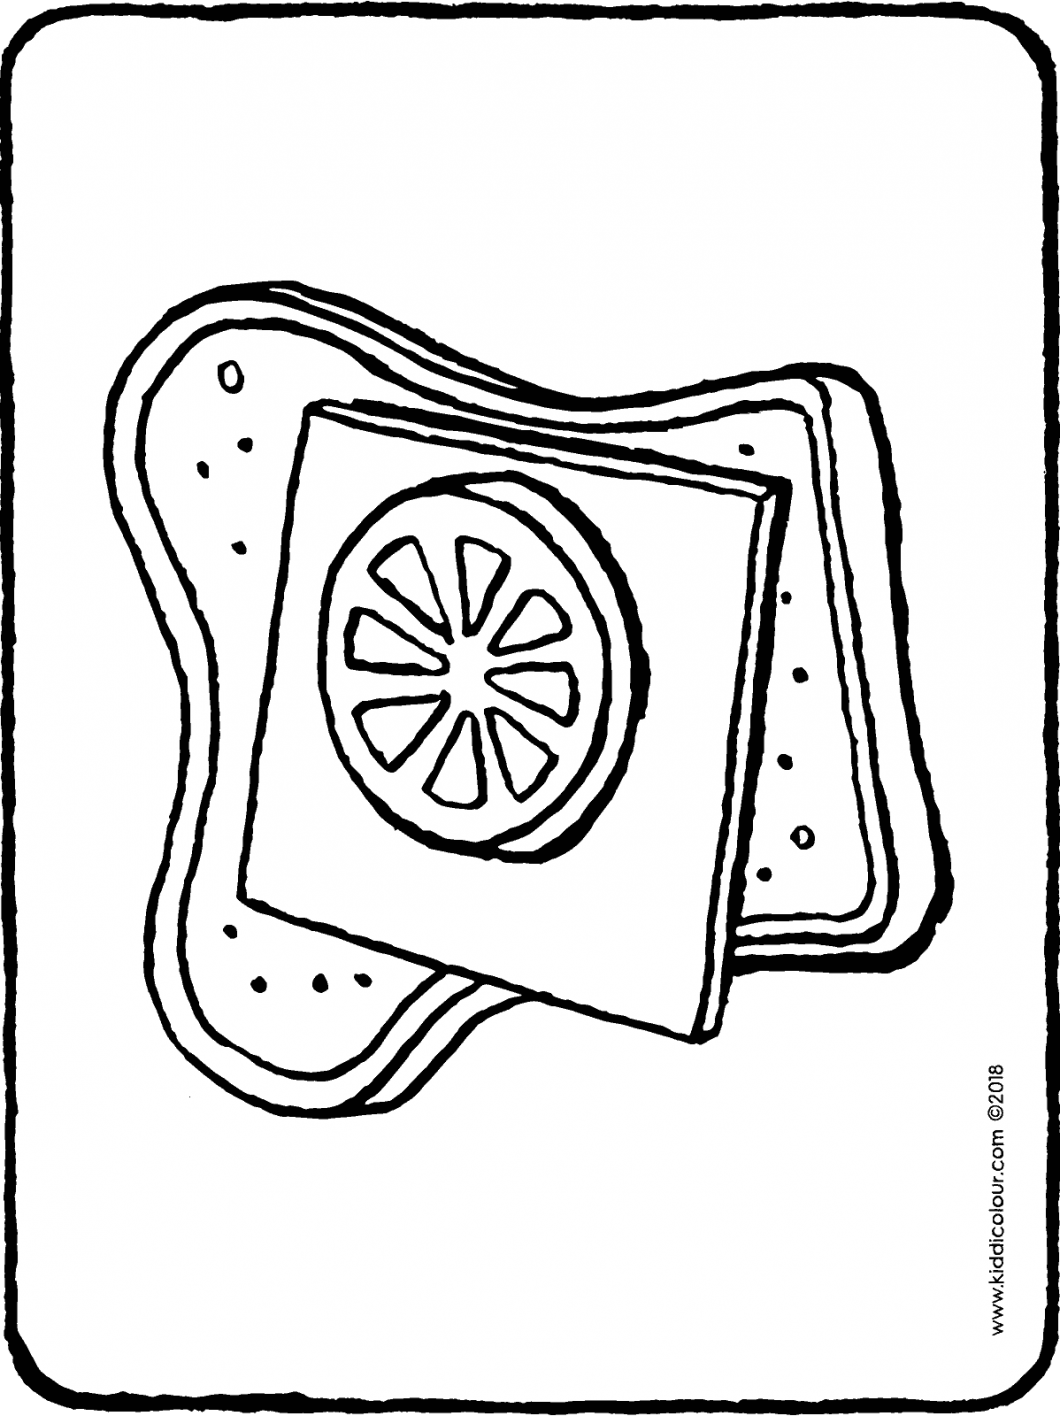 a cheese and tomato sandwich colouring page drawing picture 01H